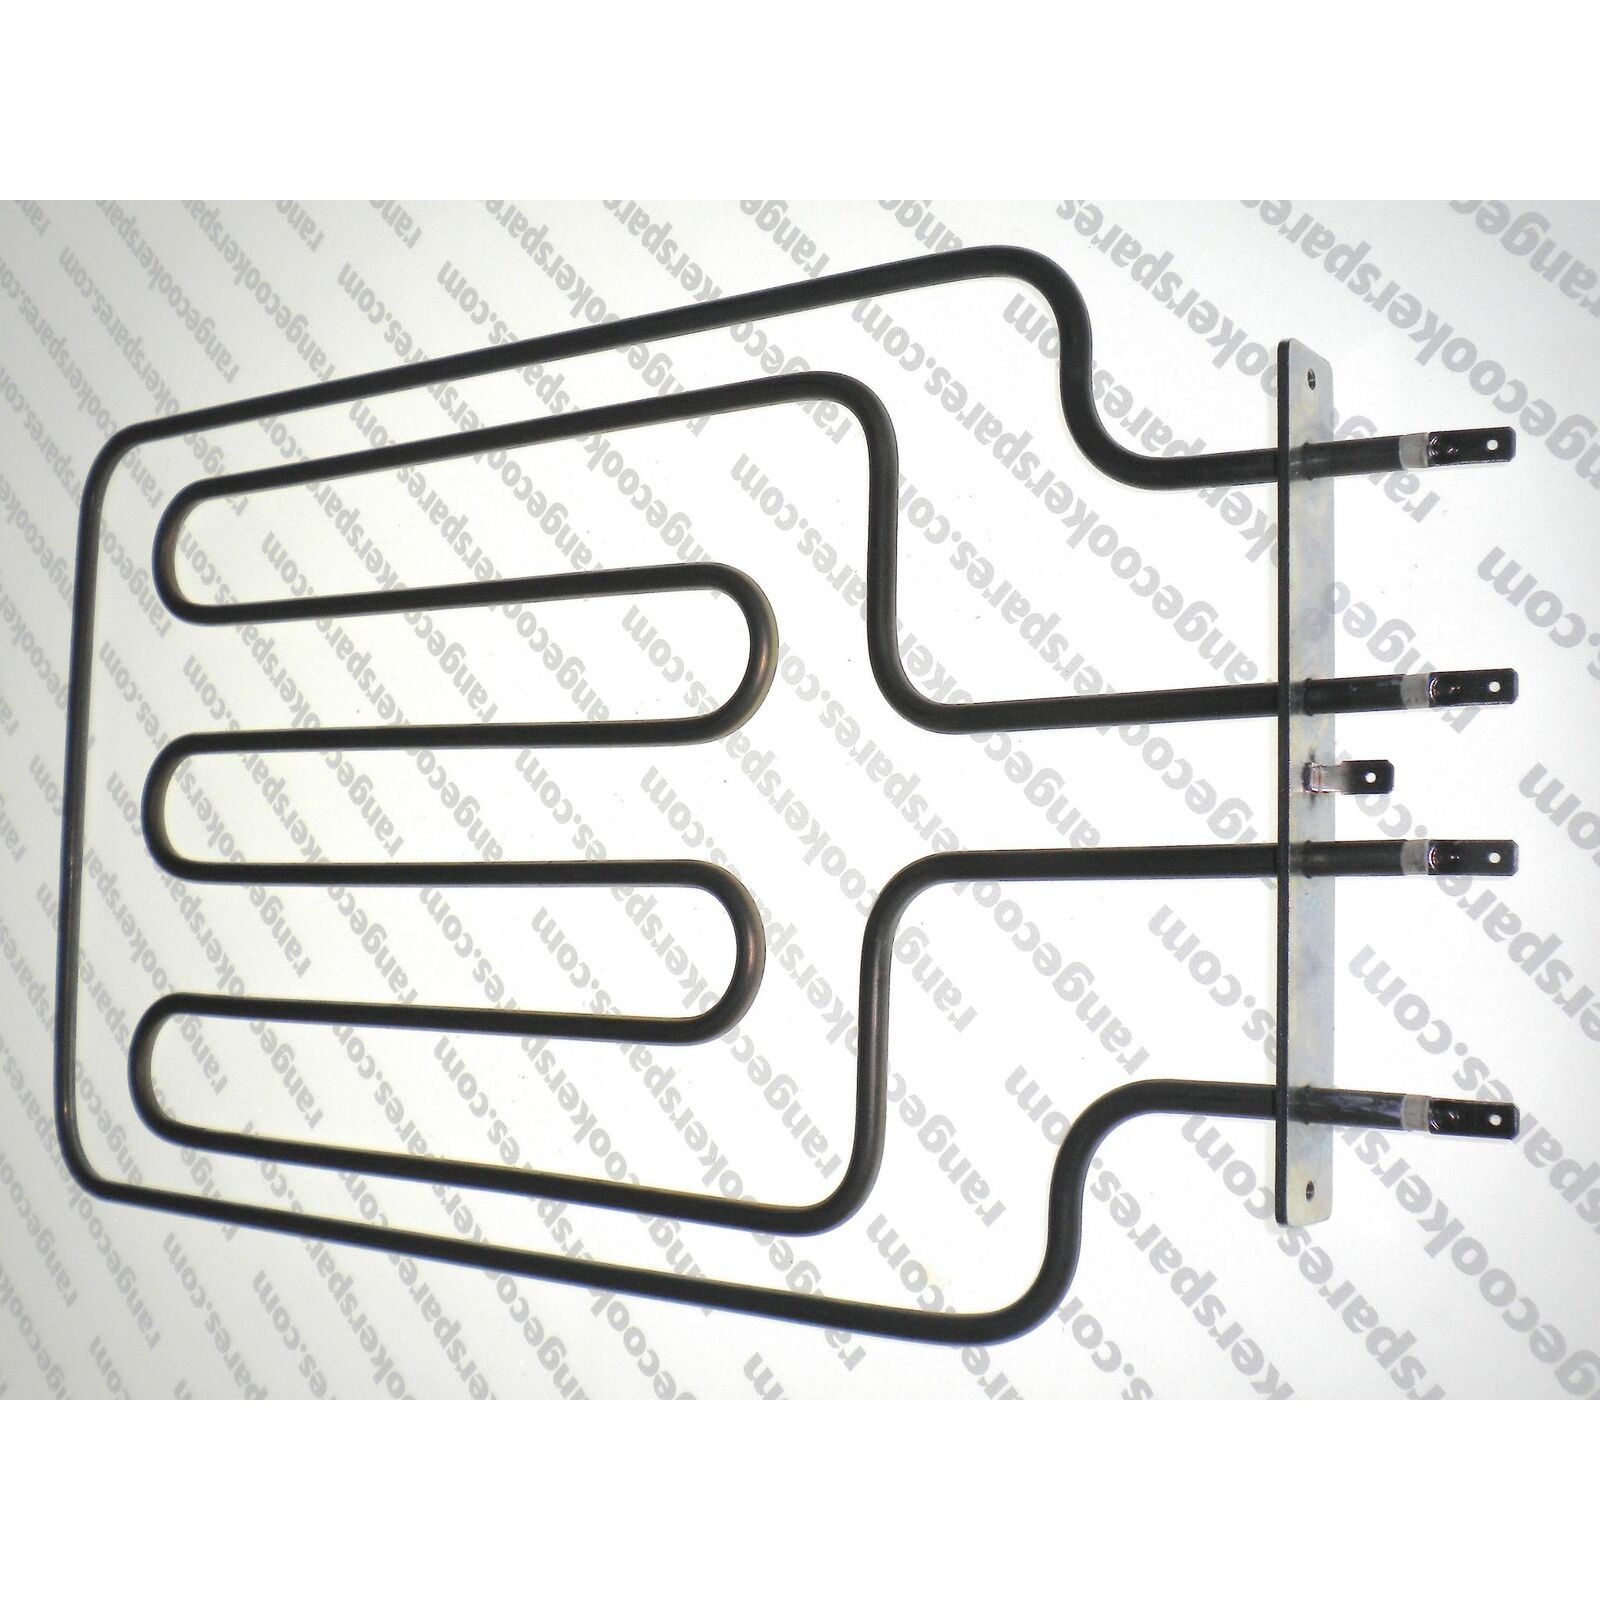 GENUINE A45878 ILVE 30 CM DUAL GRILL ELEMENT A45878 SPI-A45878 EGO